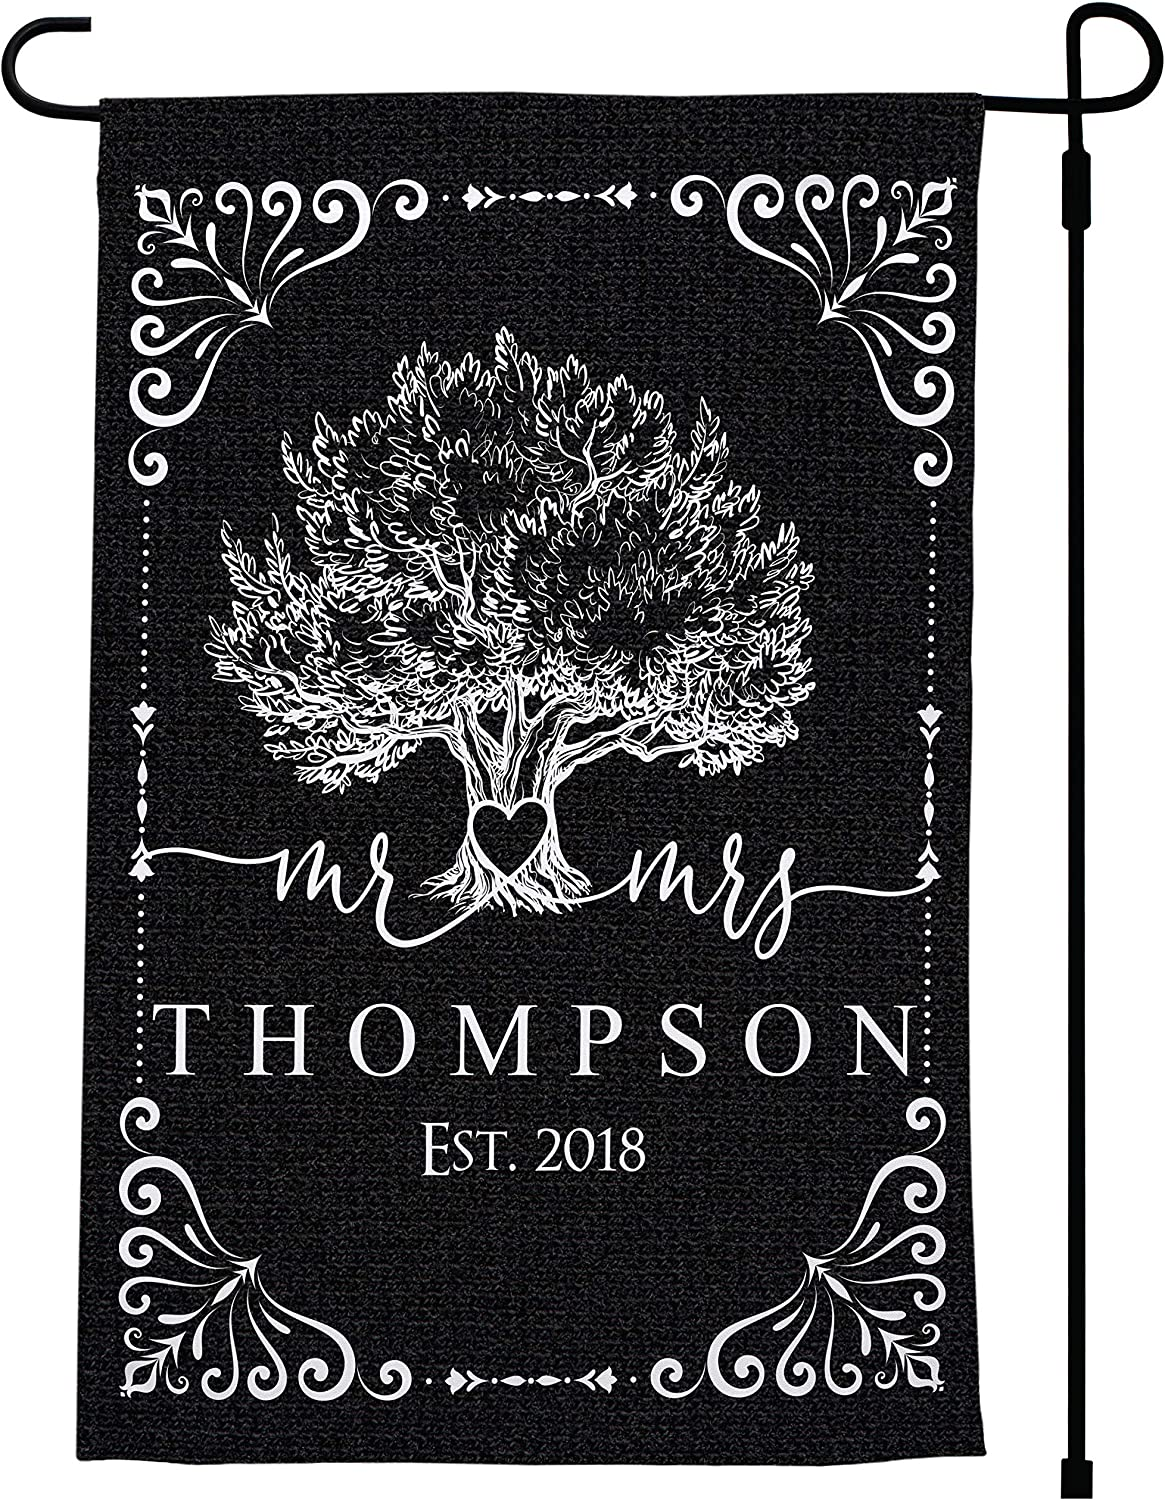 Personalized Garden Flags 9 Design 12 Color W Any Text 12 X 18 Double Or Single Sided Custom Vertical Yard Flag W Family Last Name Fall Summer Outdoor Decor Gift Monogram Welcome Sign Garden Outdoor Amazon Com